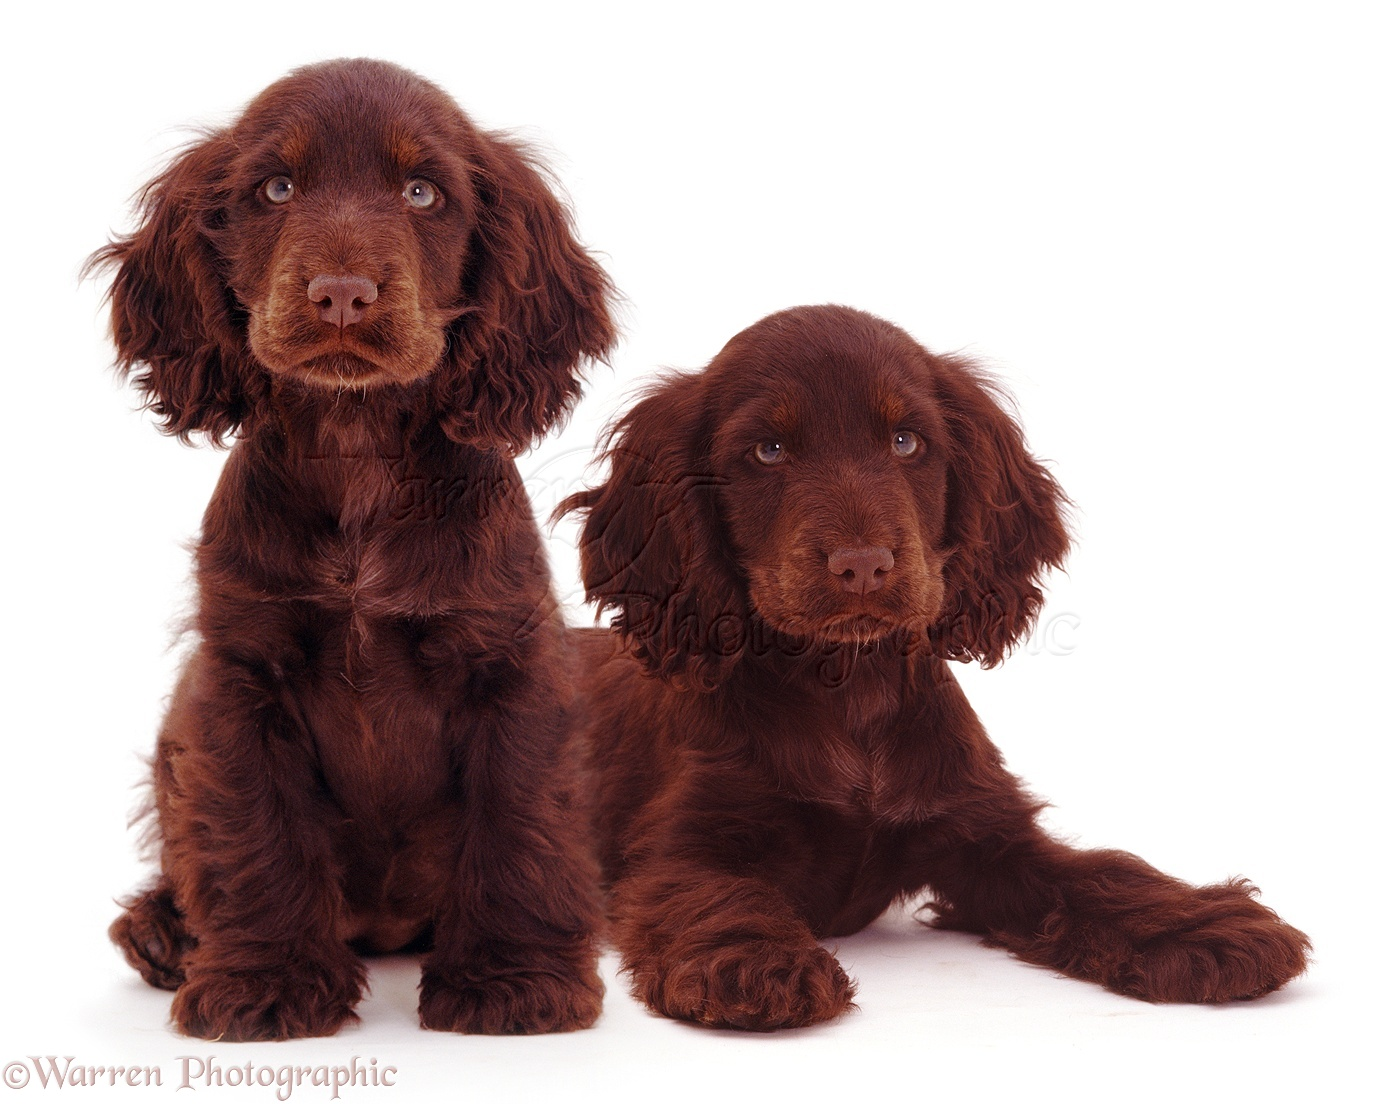 Dogs: Two Chocolate Cocker Spaniels photo - WP08427